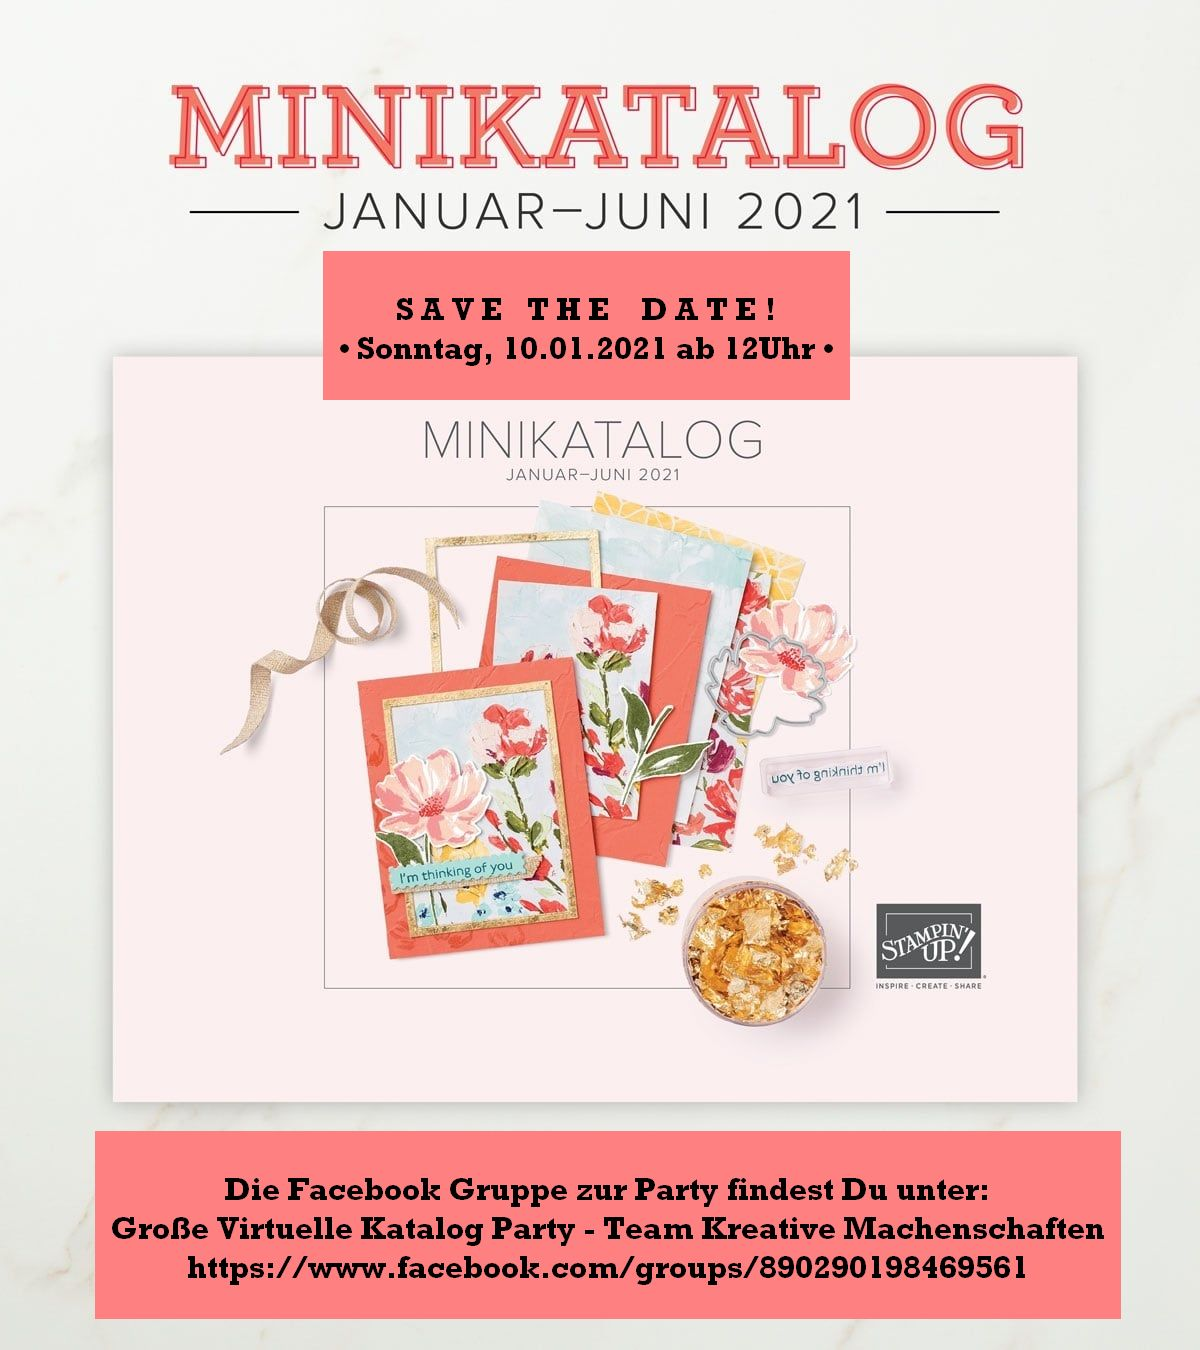 Katalogparty bei Facebook 10.01.2021